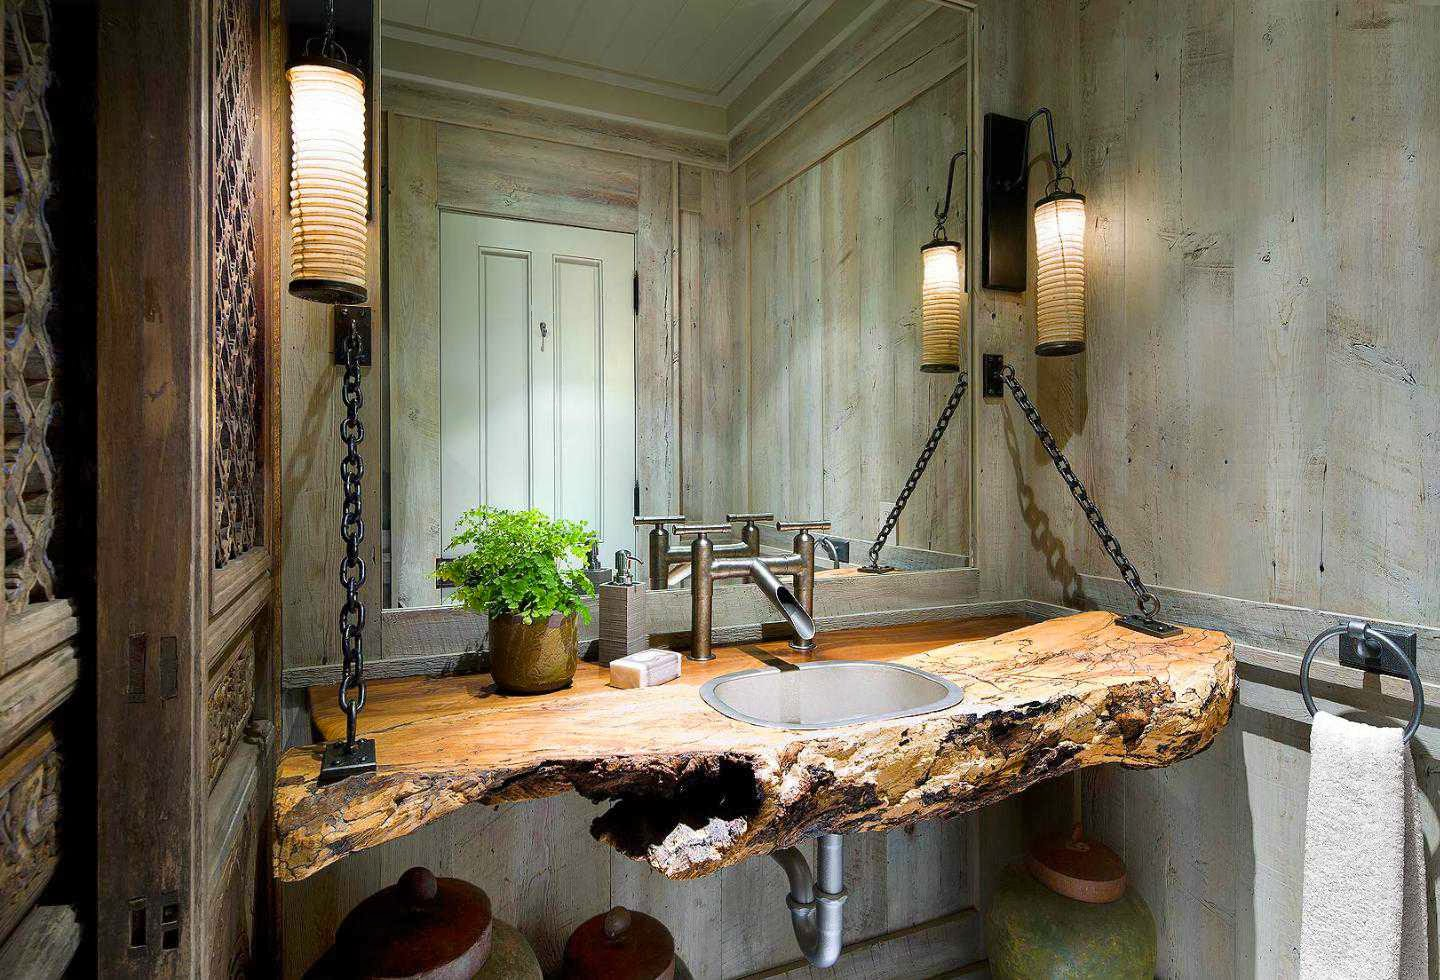 Western and rustic bathroom decor ideas